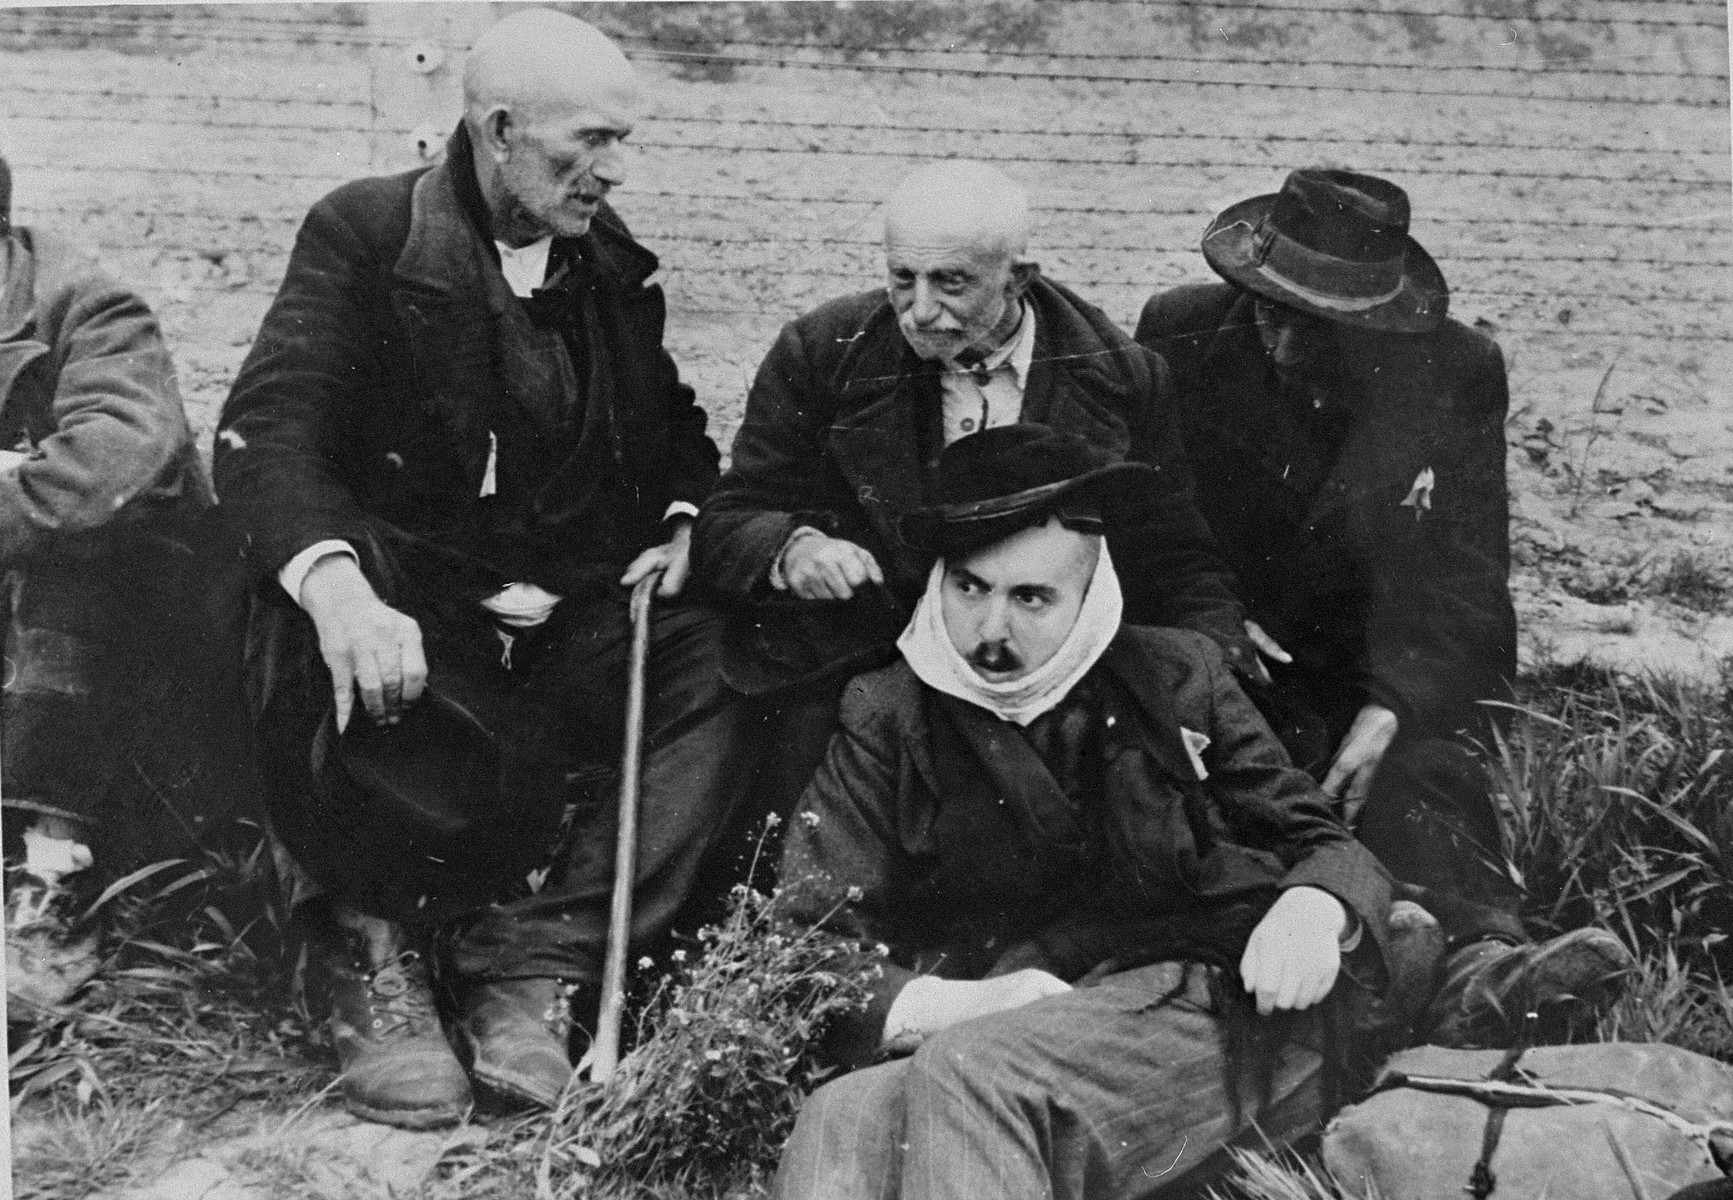 Elderly Jewish men from Subcarpathian Rus sit on the grass in Auschwitz-Birkenau prior to being sent to the gas chambers.  One of the men wears a scarf to cover his shaven face.